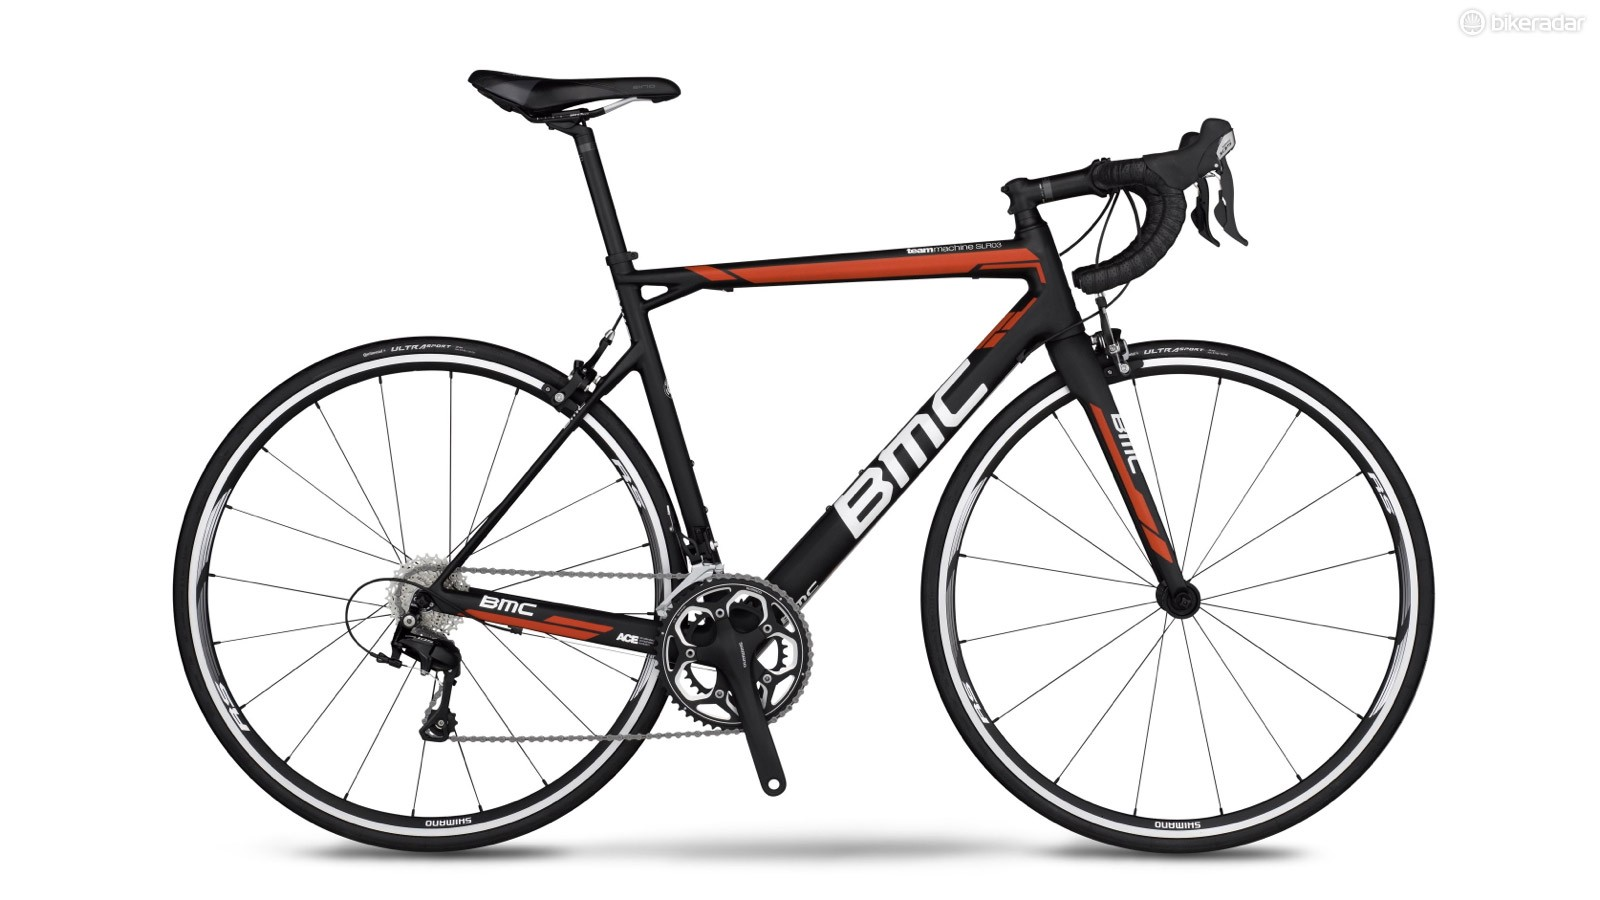 With the Teammachine SLR01 and SLR02 having already created a buzz, BMC is bringing the pricepoint down with the SLR03